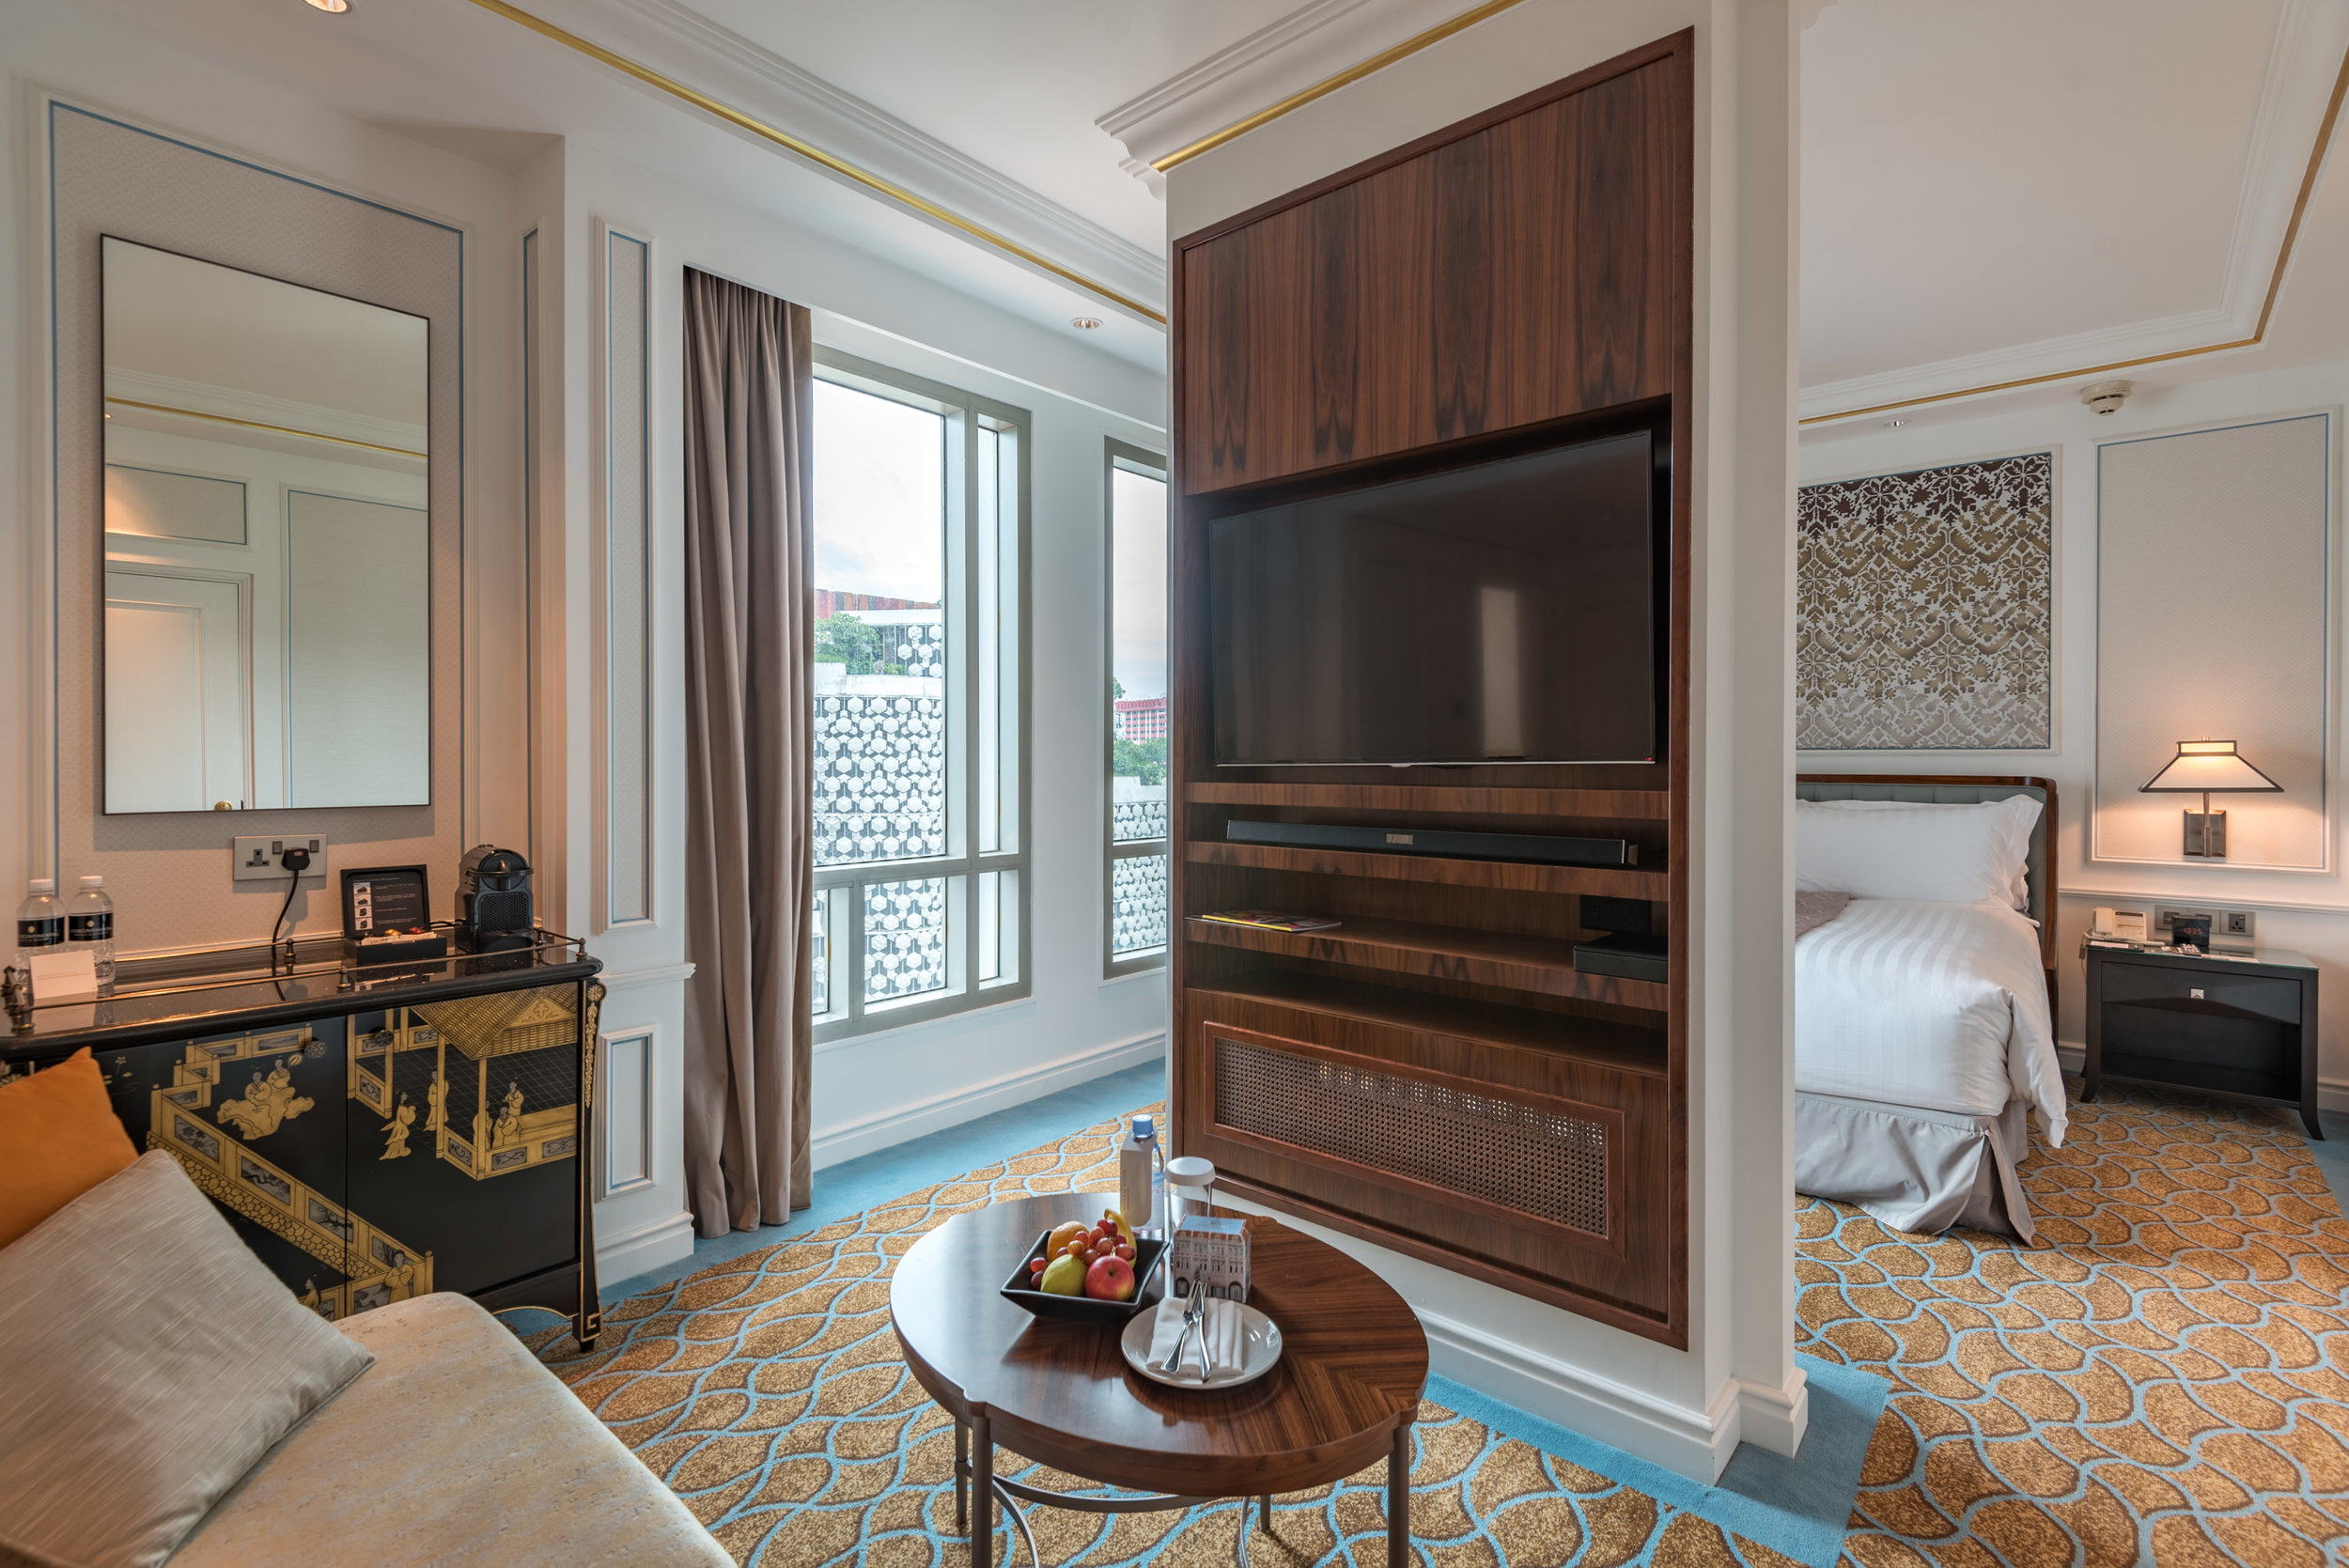 Living Area and Bedroom  Grand Deluxe Room - InterContinental Singapore